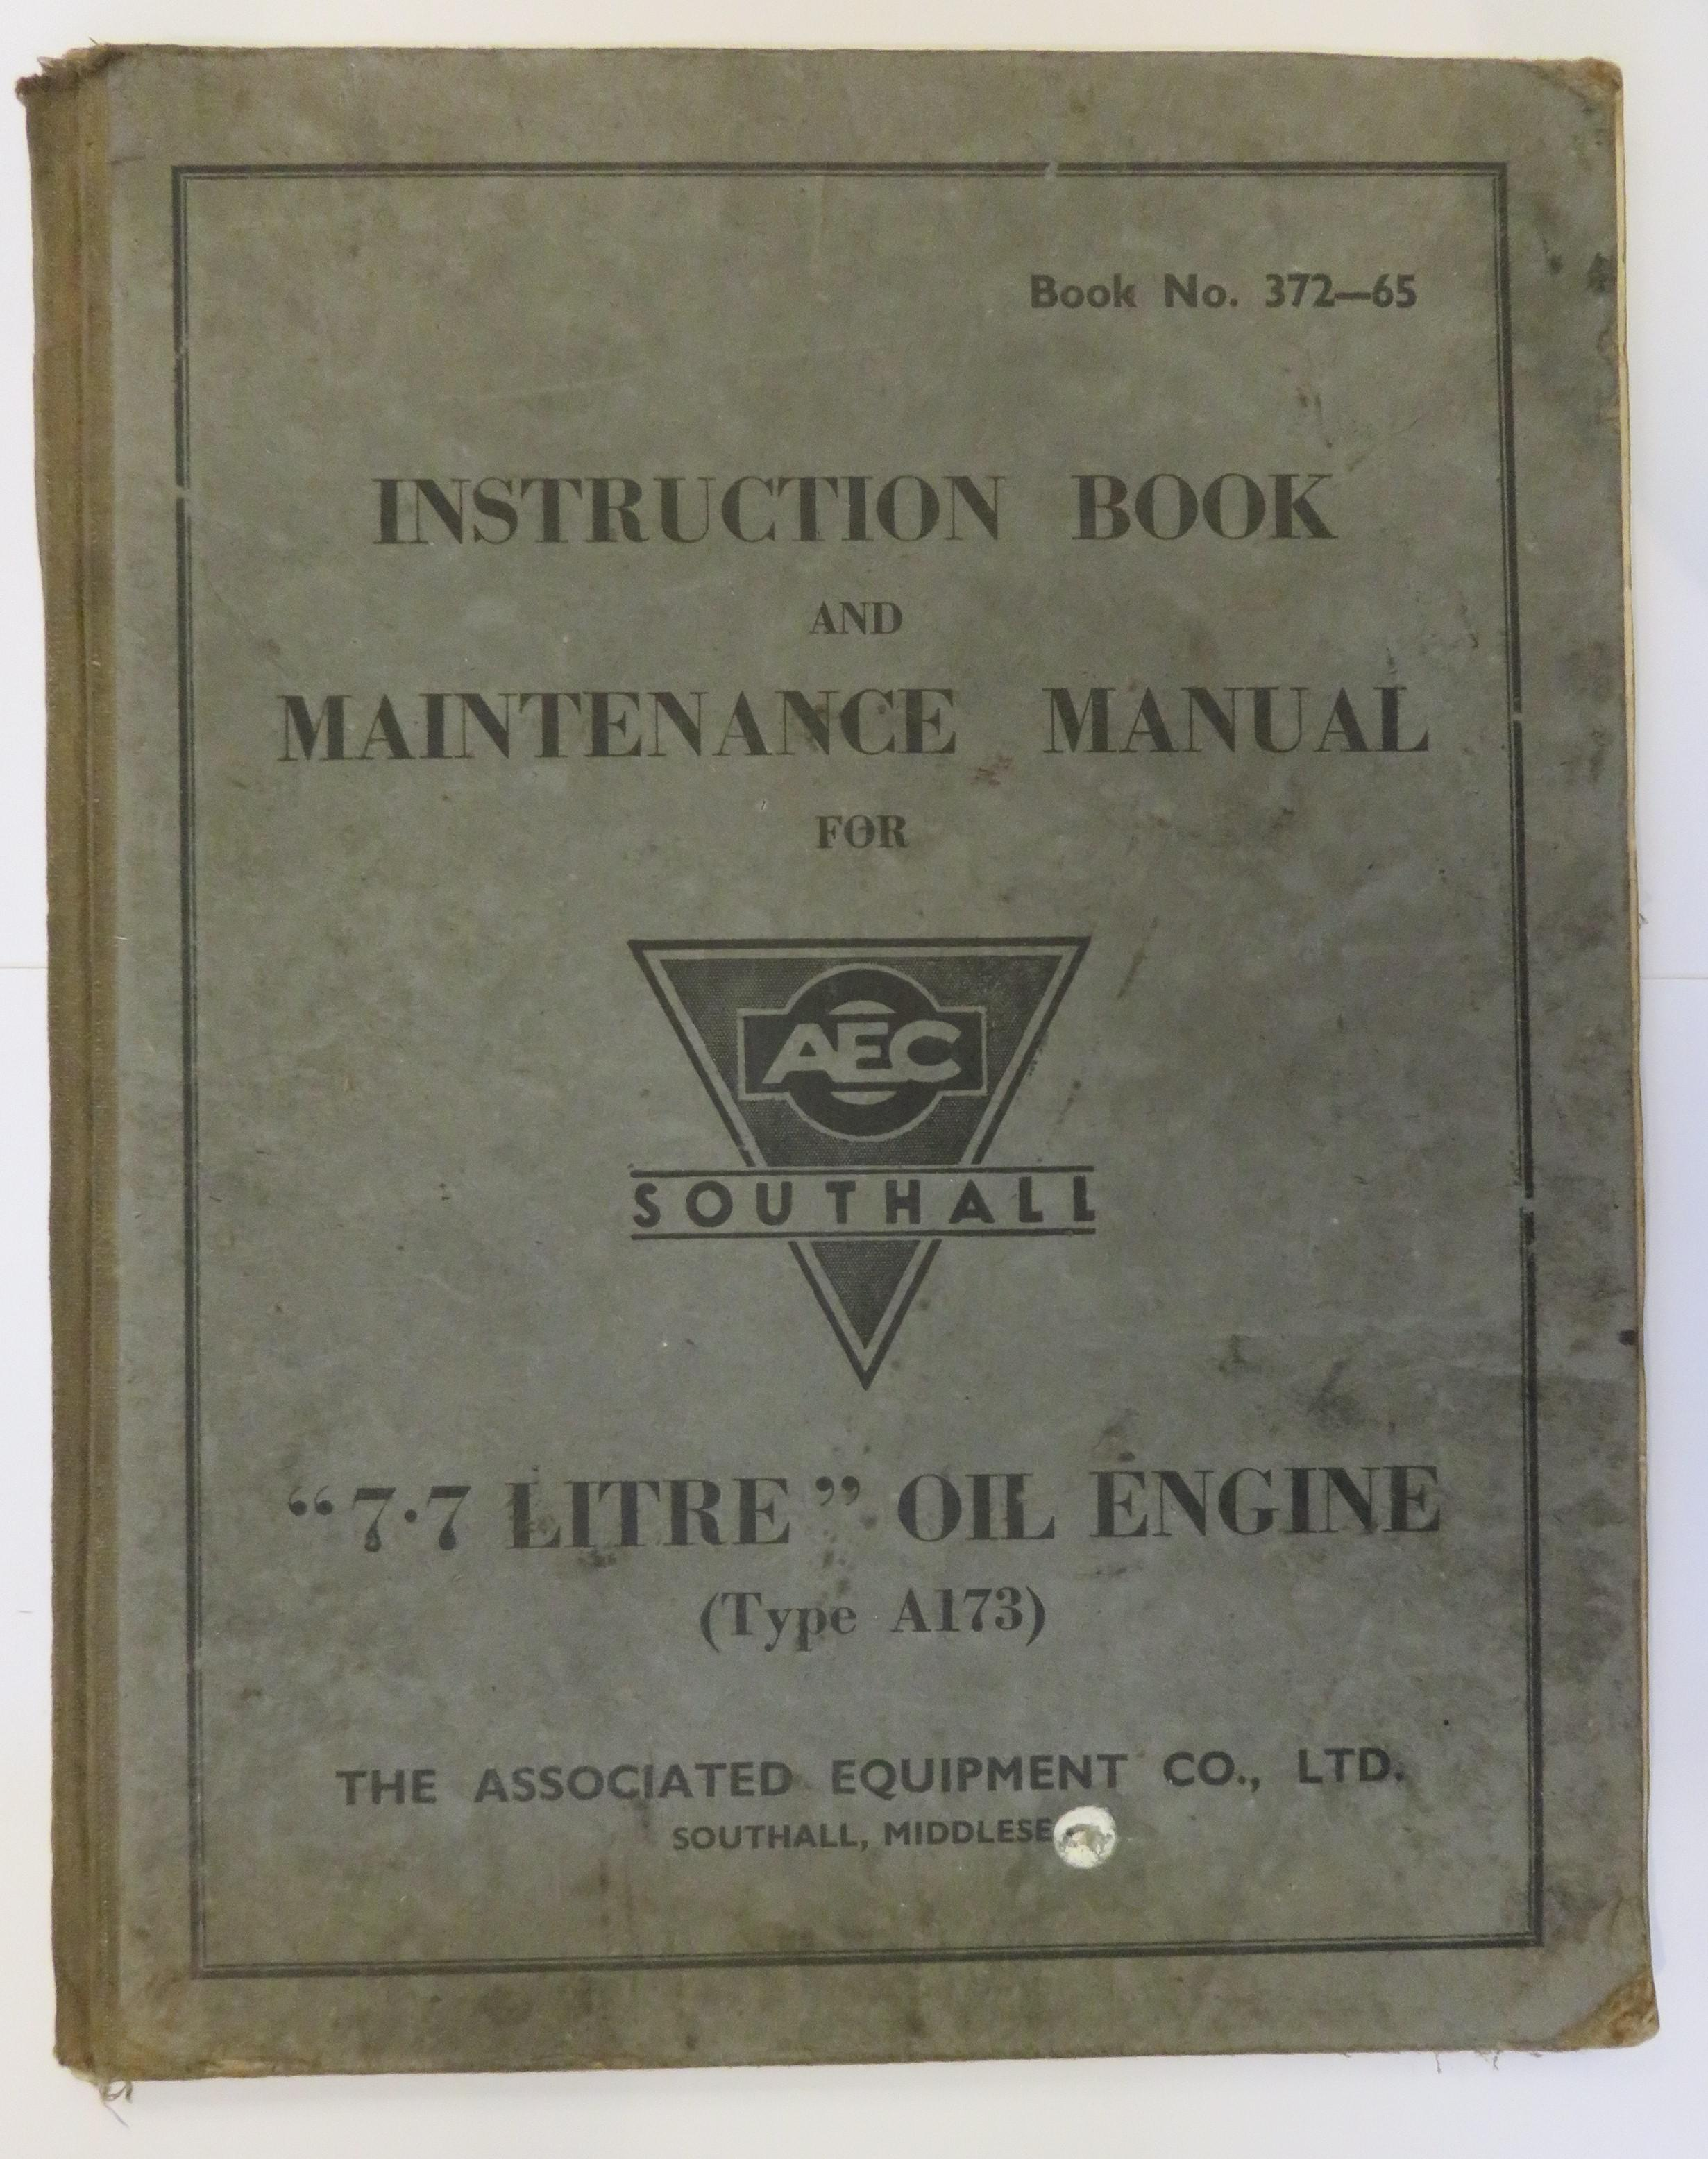 Instruction Book And Maintenance Manual For AEC Southall 7.7 Litre Oil Engine